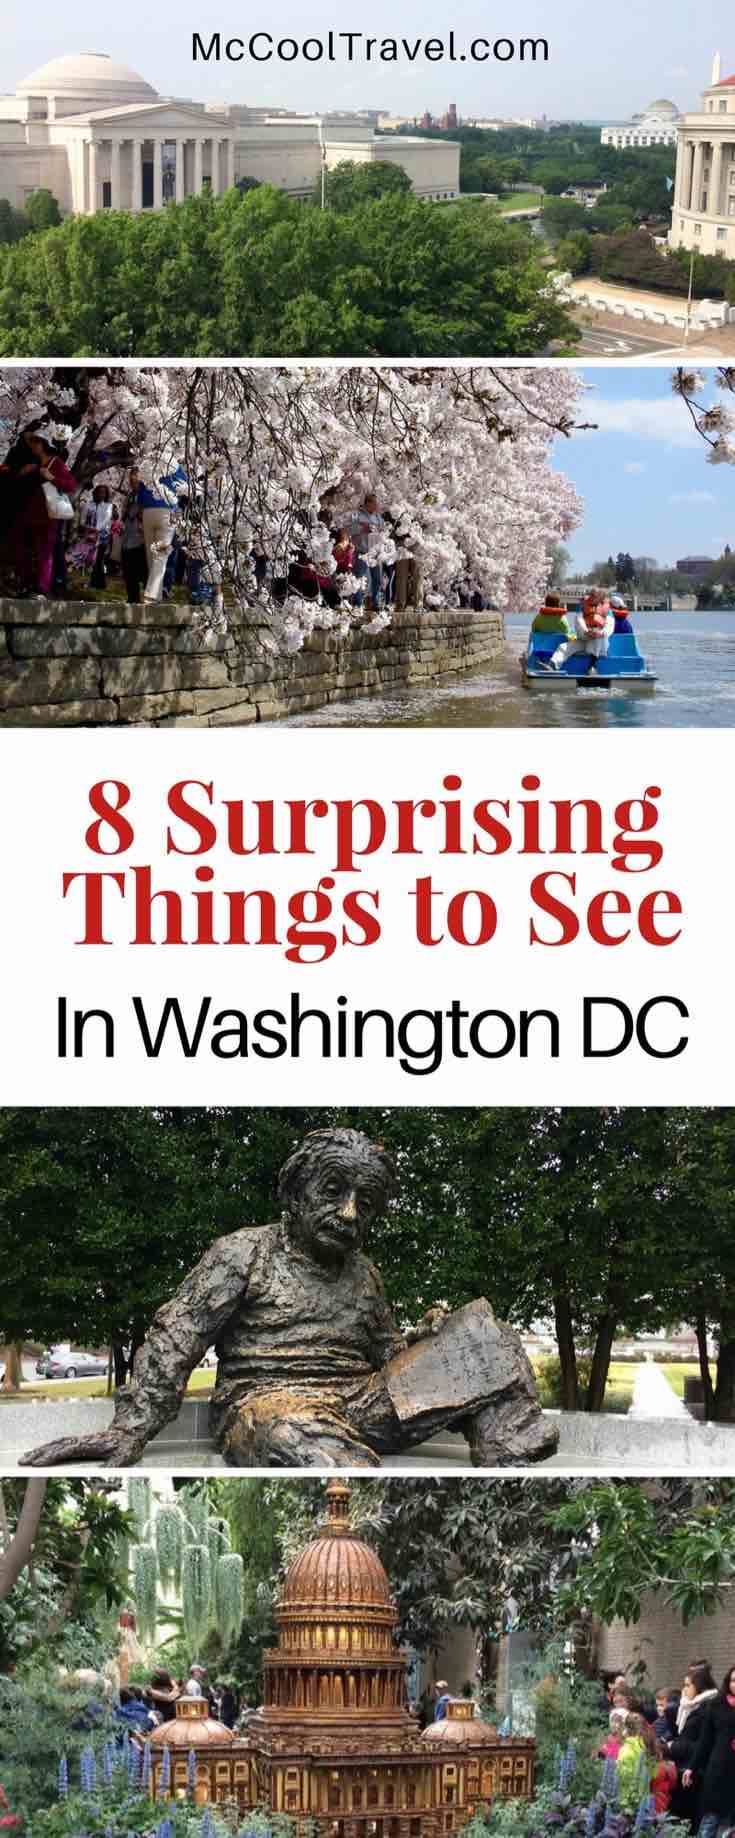 Surprising things to see in Washington DC. I have lived near DC for over 20 years and Expedia.com asked me for my surprising things to see in Washington DC.